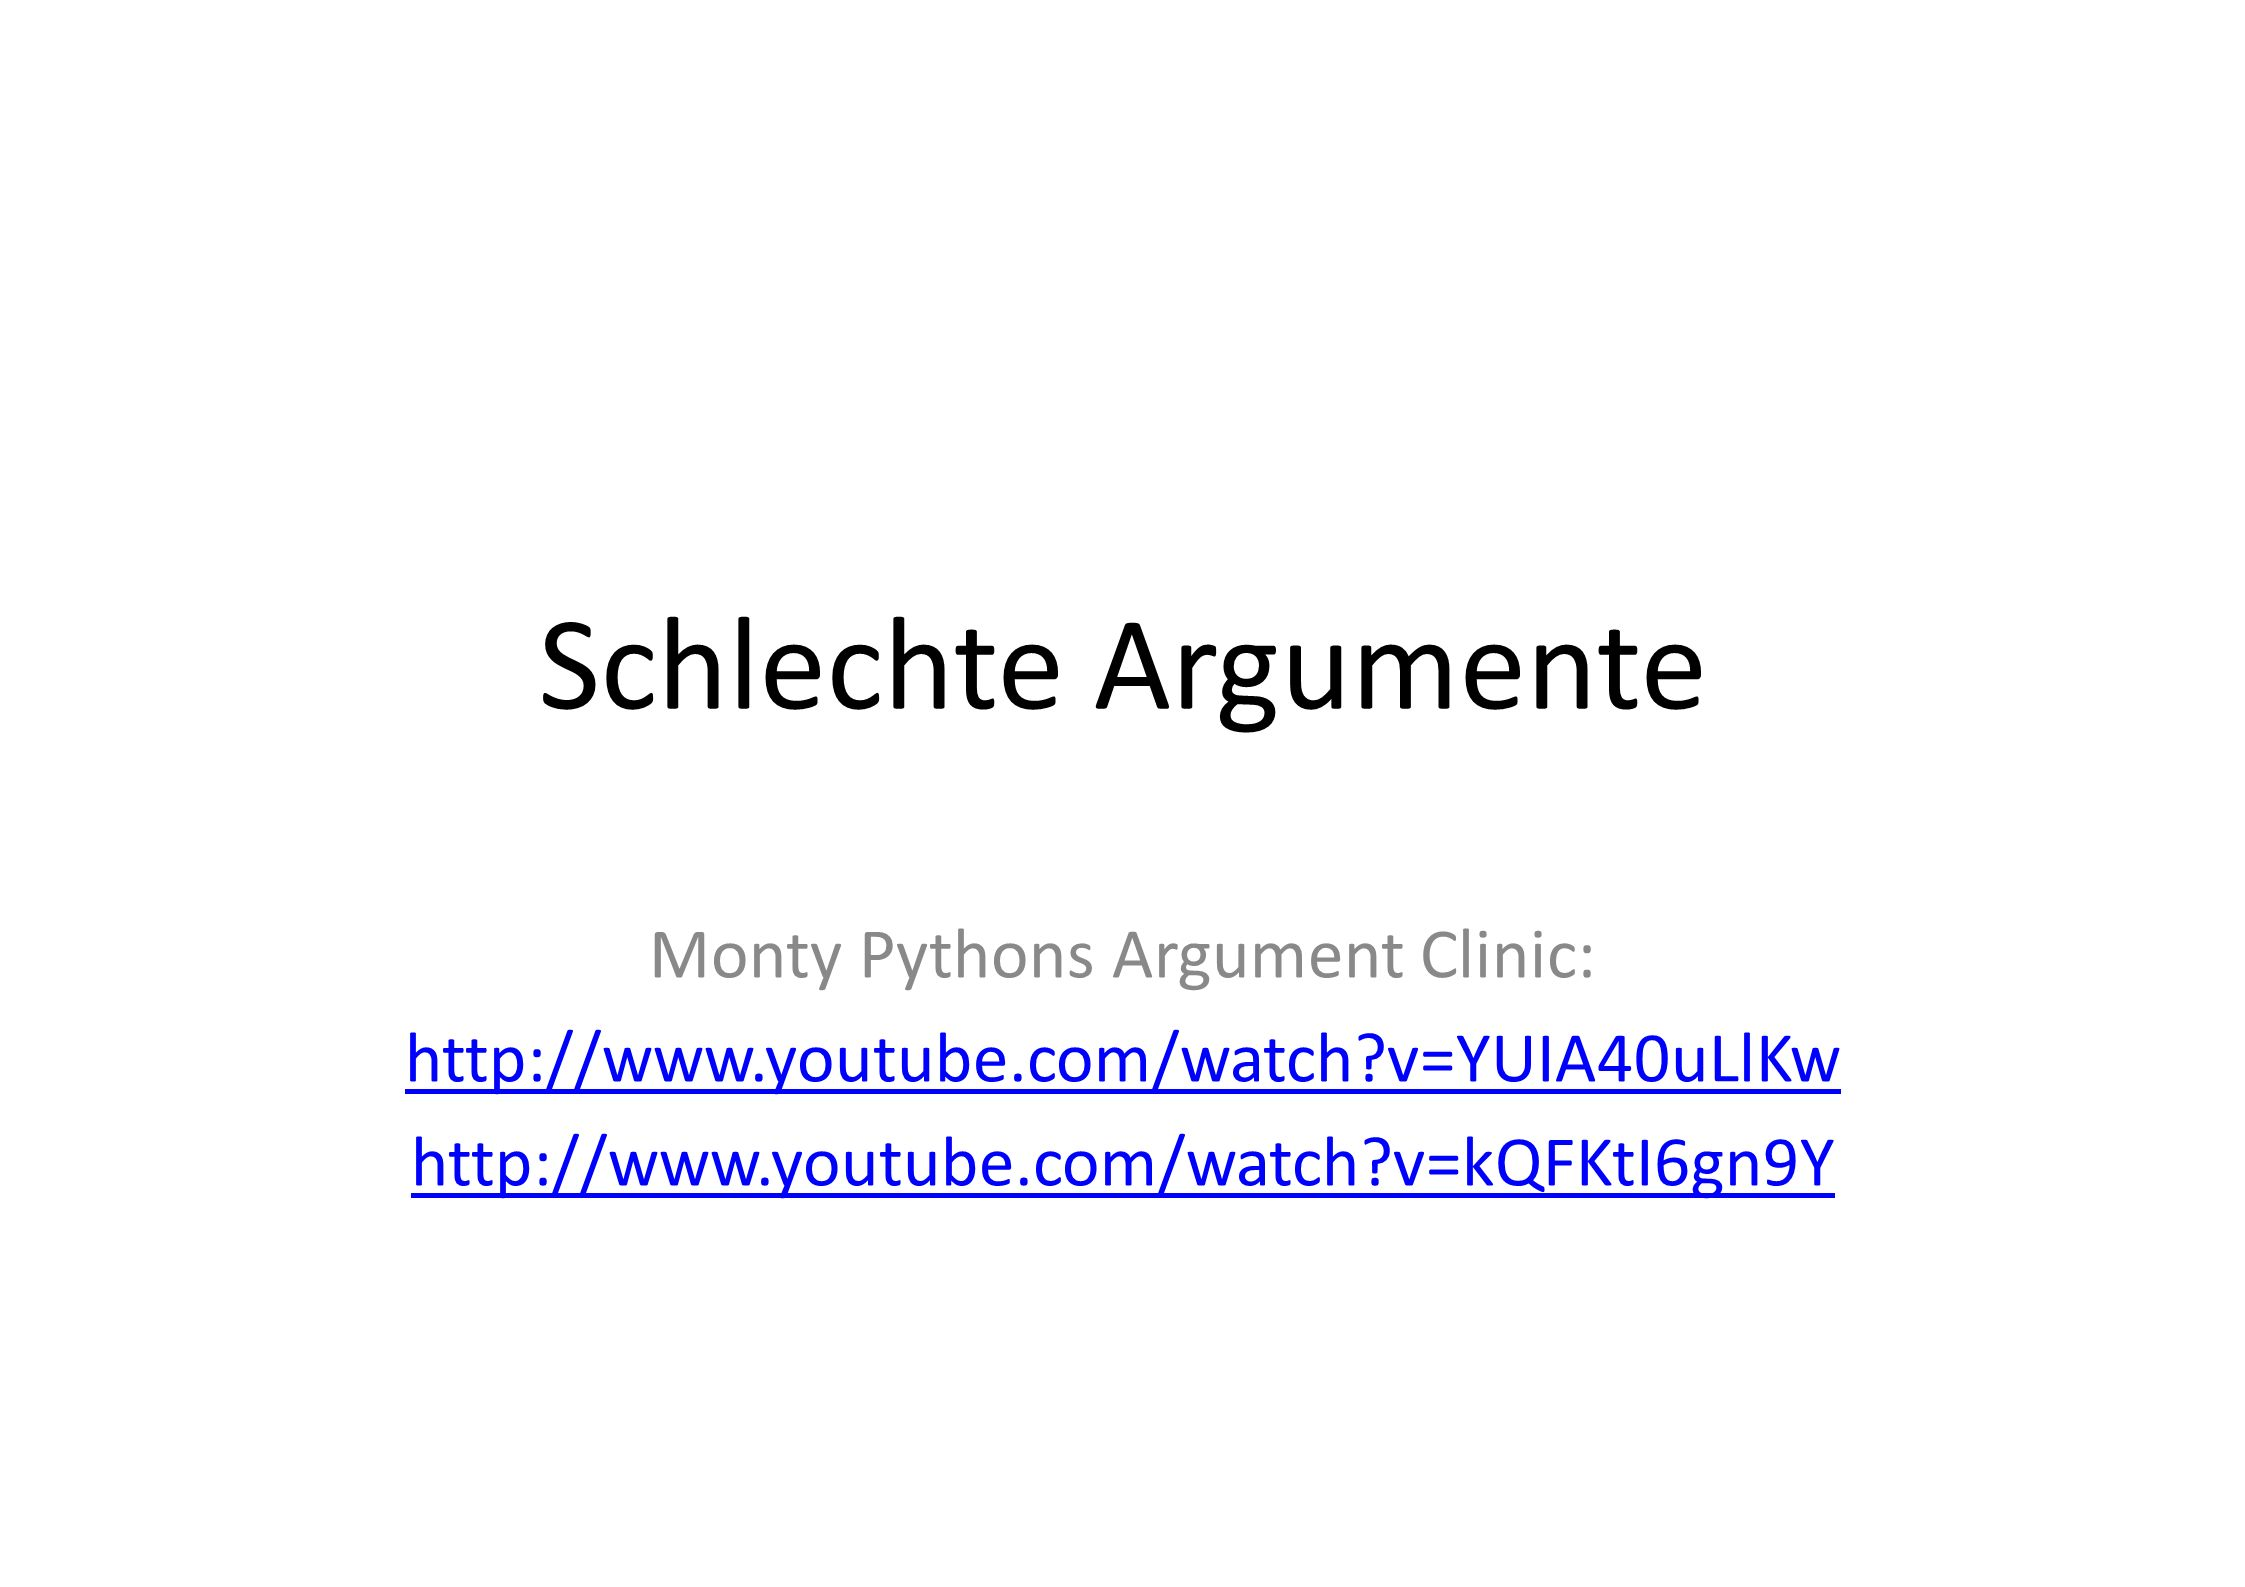 Schlechte Argumente Monty Pythons Argument Clinic: http://www.youtube.com/watch?v=YUIA40uLlKw http://www.youtube.com/watch?v=kQFKtI6gn9Y